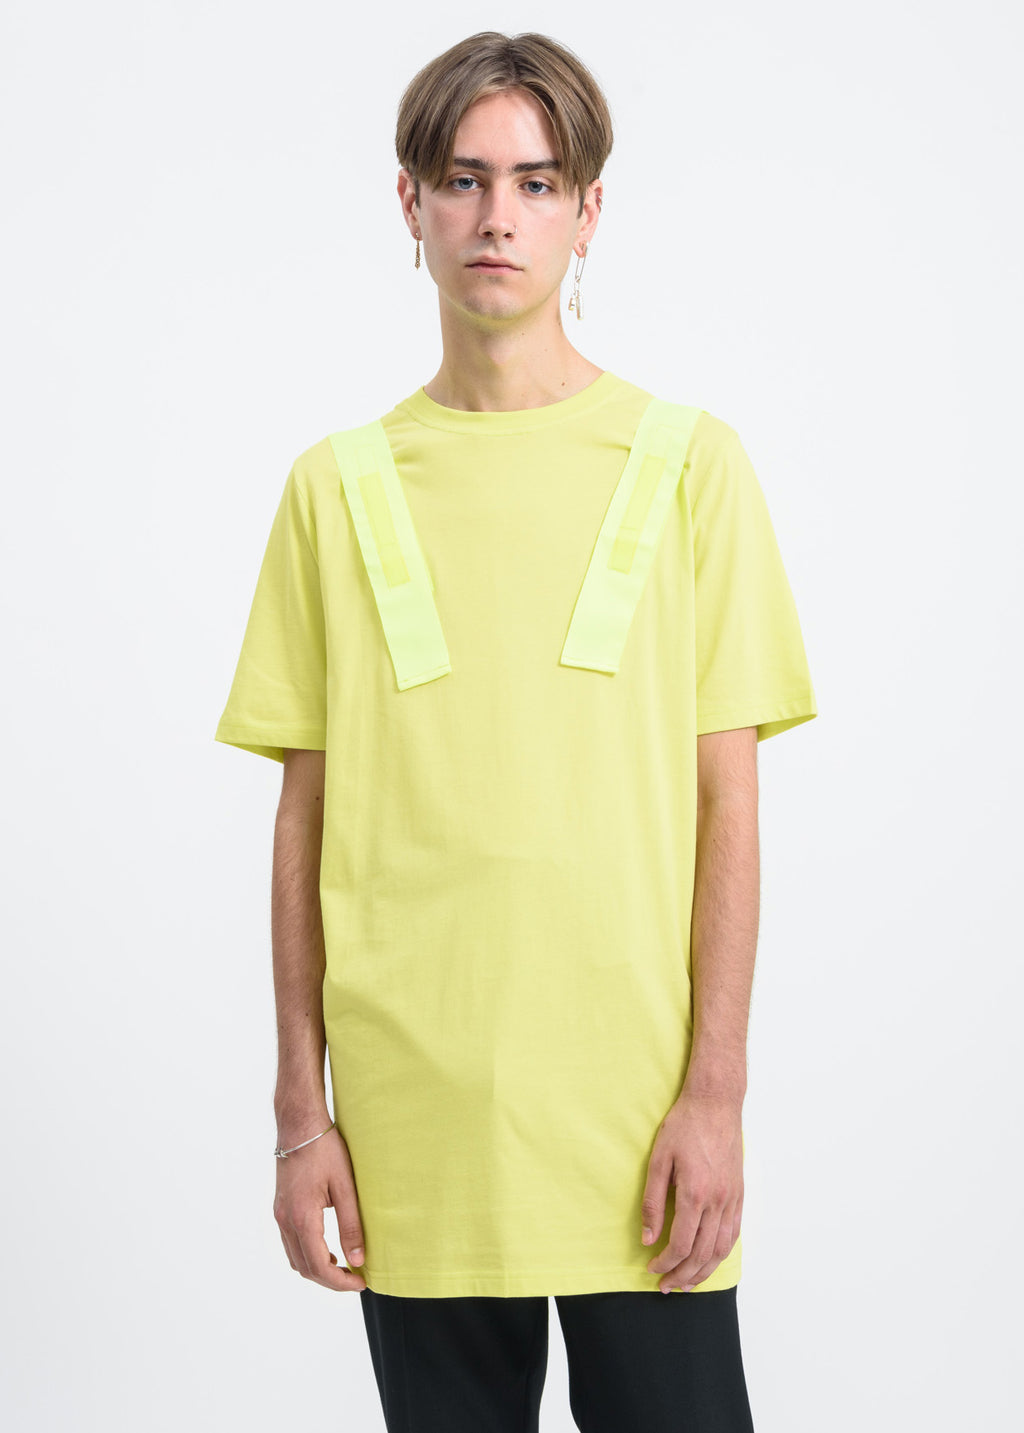 Matthew Miller, Neon Yellow Xander T-Shirt, 017 Shop